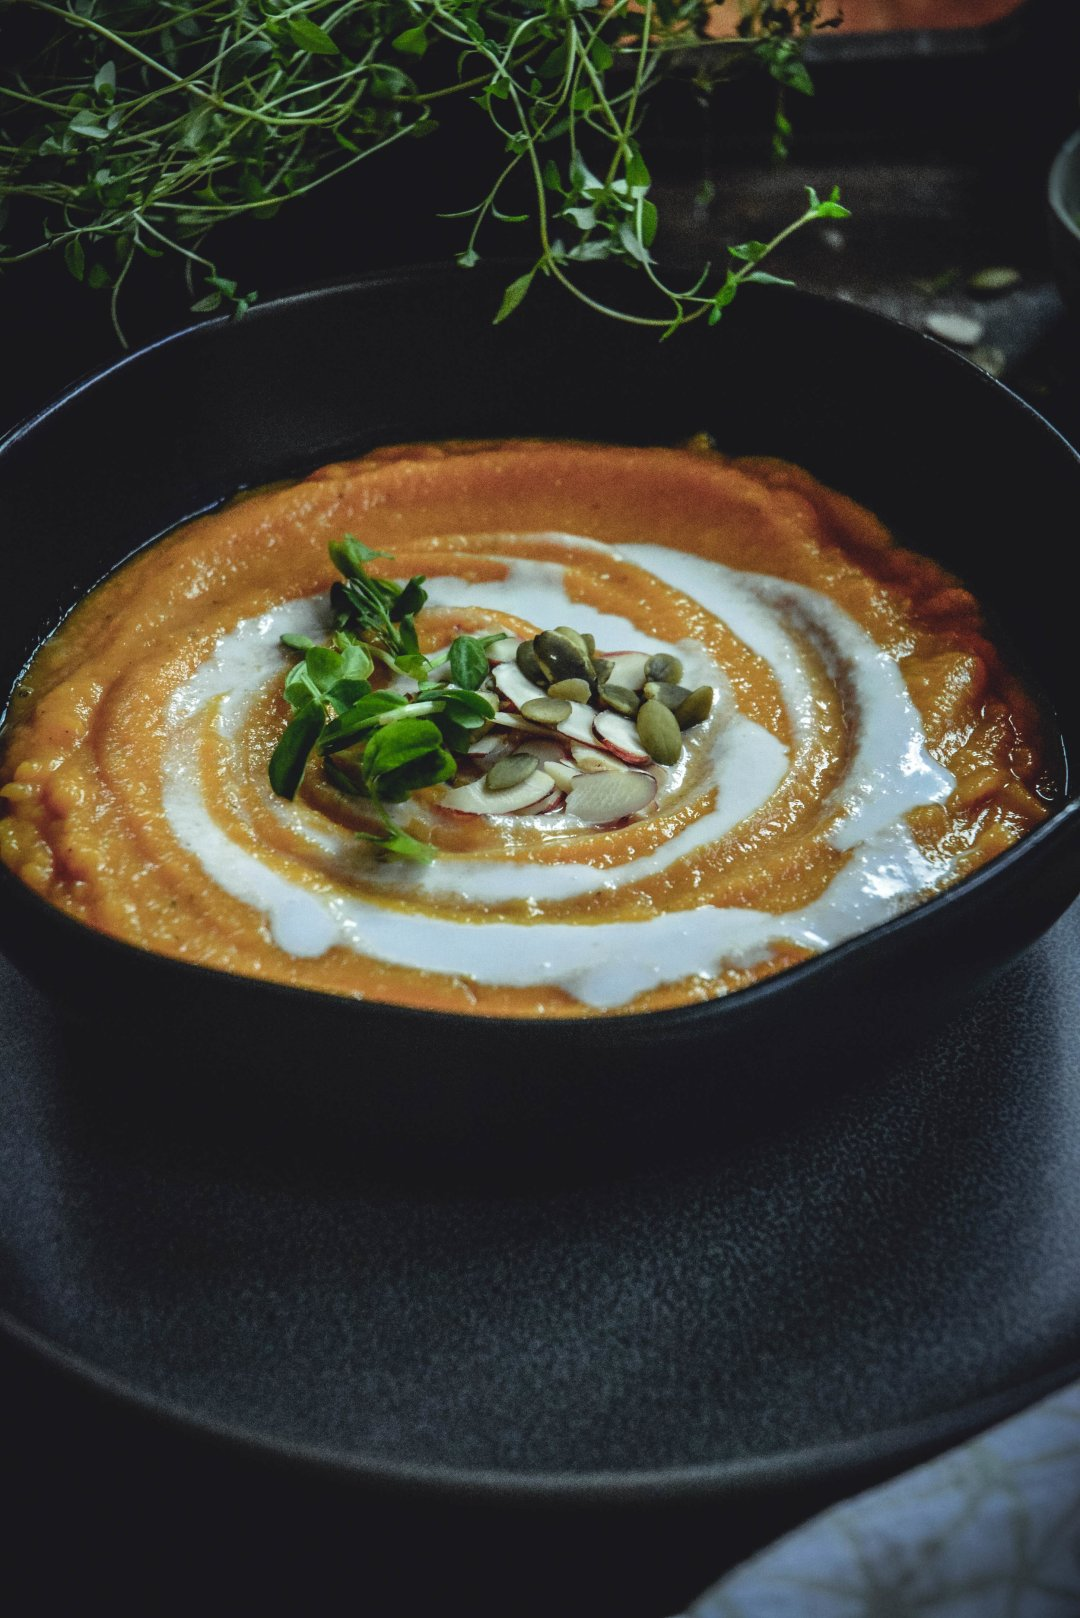 Here is a simple, warming butternut squash soup recipe that's you're going to love. Roasting the vegetables first, gives them a delicious, hearty flavor. This butternut squash soup is paleo, vegan and whole 30 approved too and just plain delicious! #soup, #fall, #calmeats, #butternutsquashsoup, #vegan, #whole30, #grainfree, #glutenfree, #dairyfree, #fallsoup, #whole30soup, #vegansoup, #paleosoup, #curriedsoup, #curriedbutternutsquash